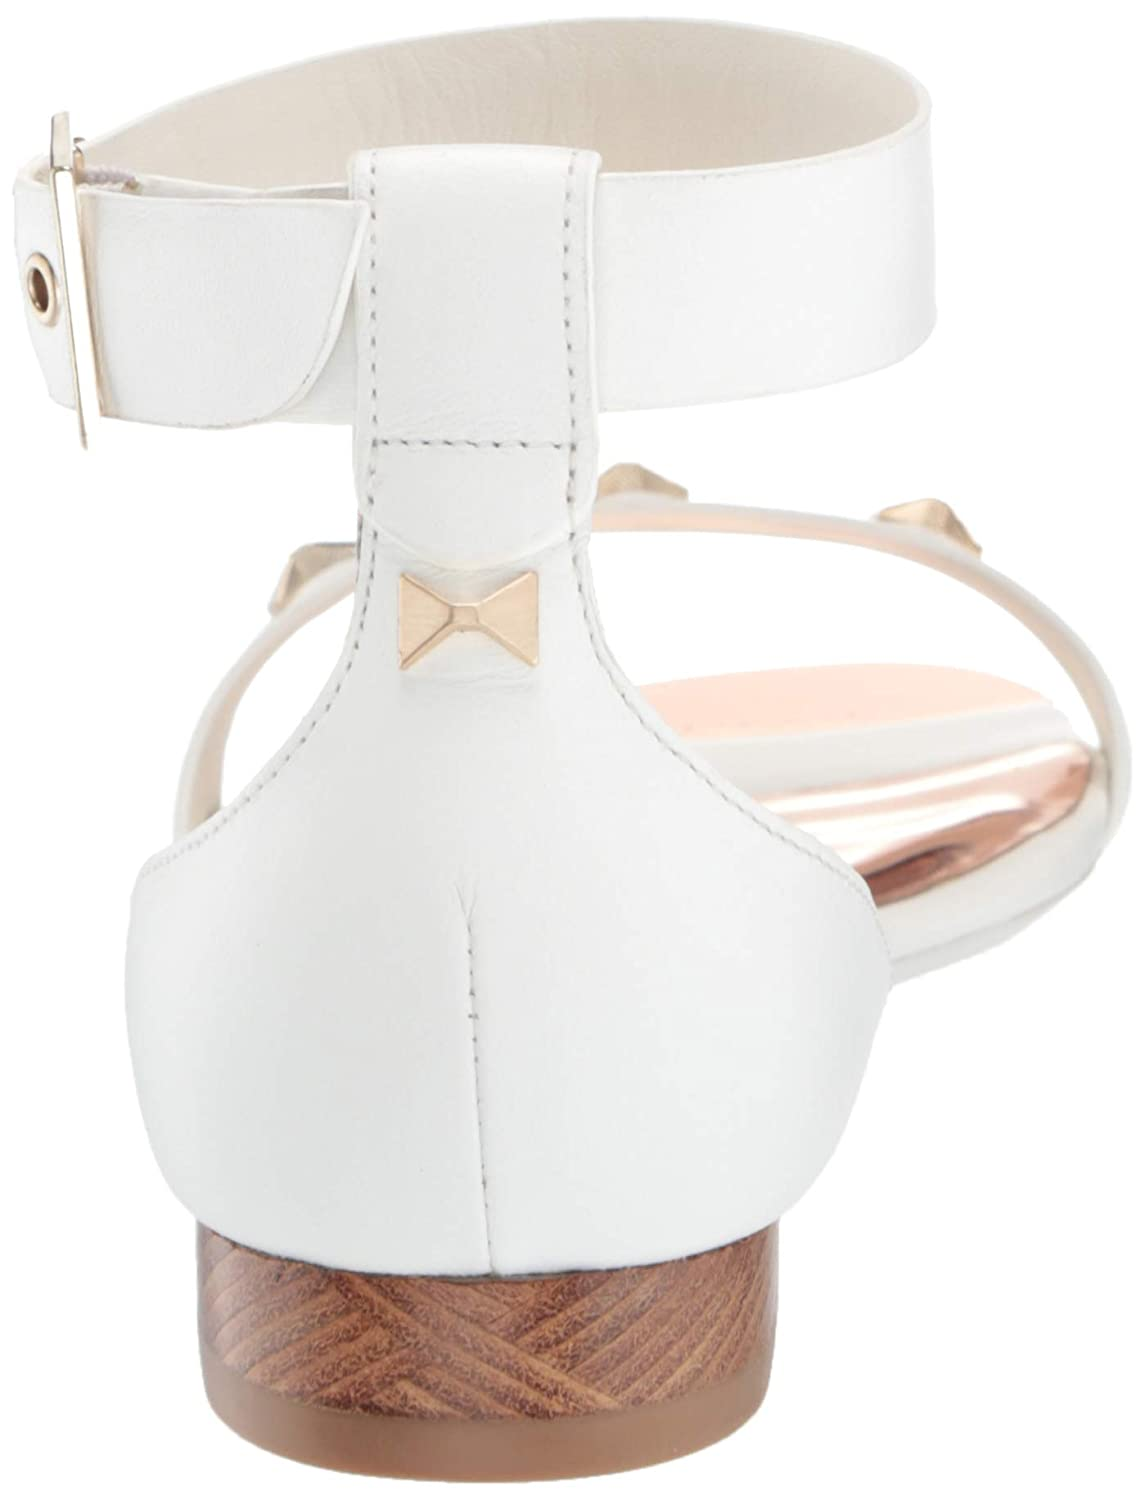 613ccd277831f Ted Baker London Women's Ovey Sandal: Amazon.co.uk: Shoes & Bags